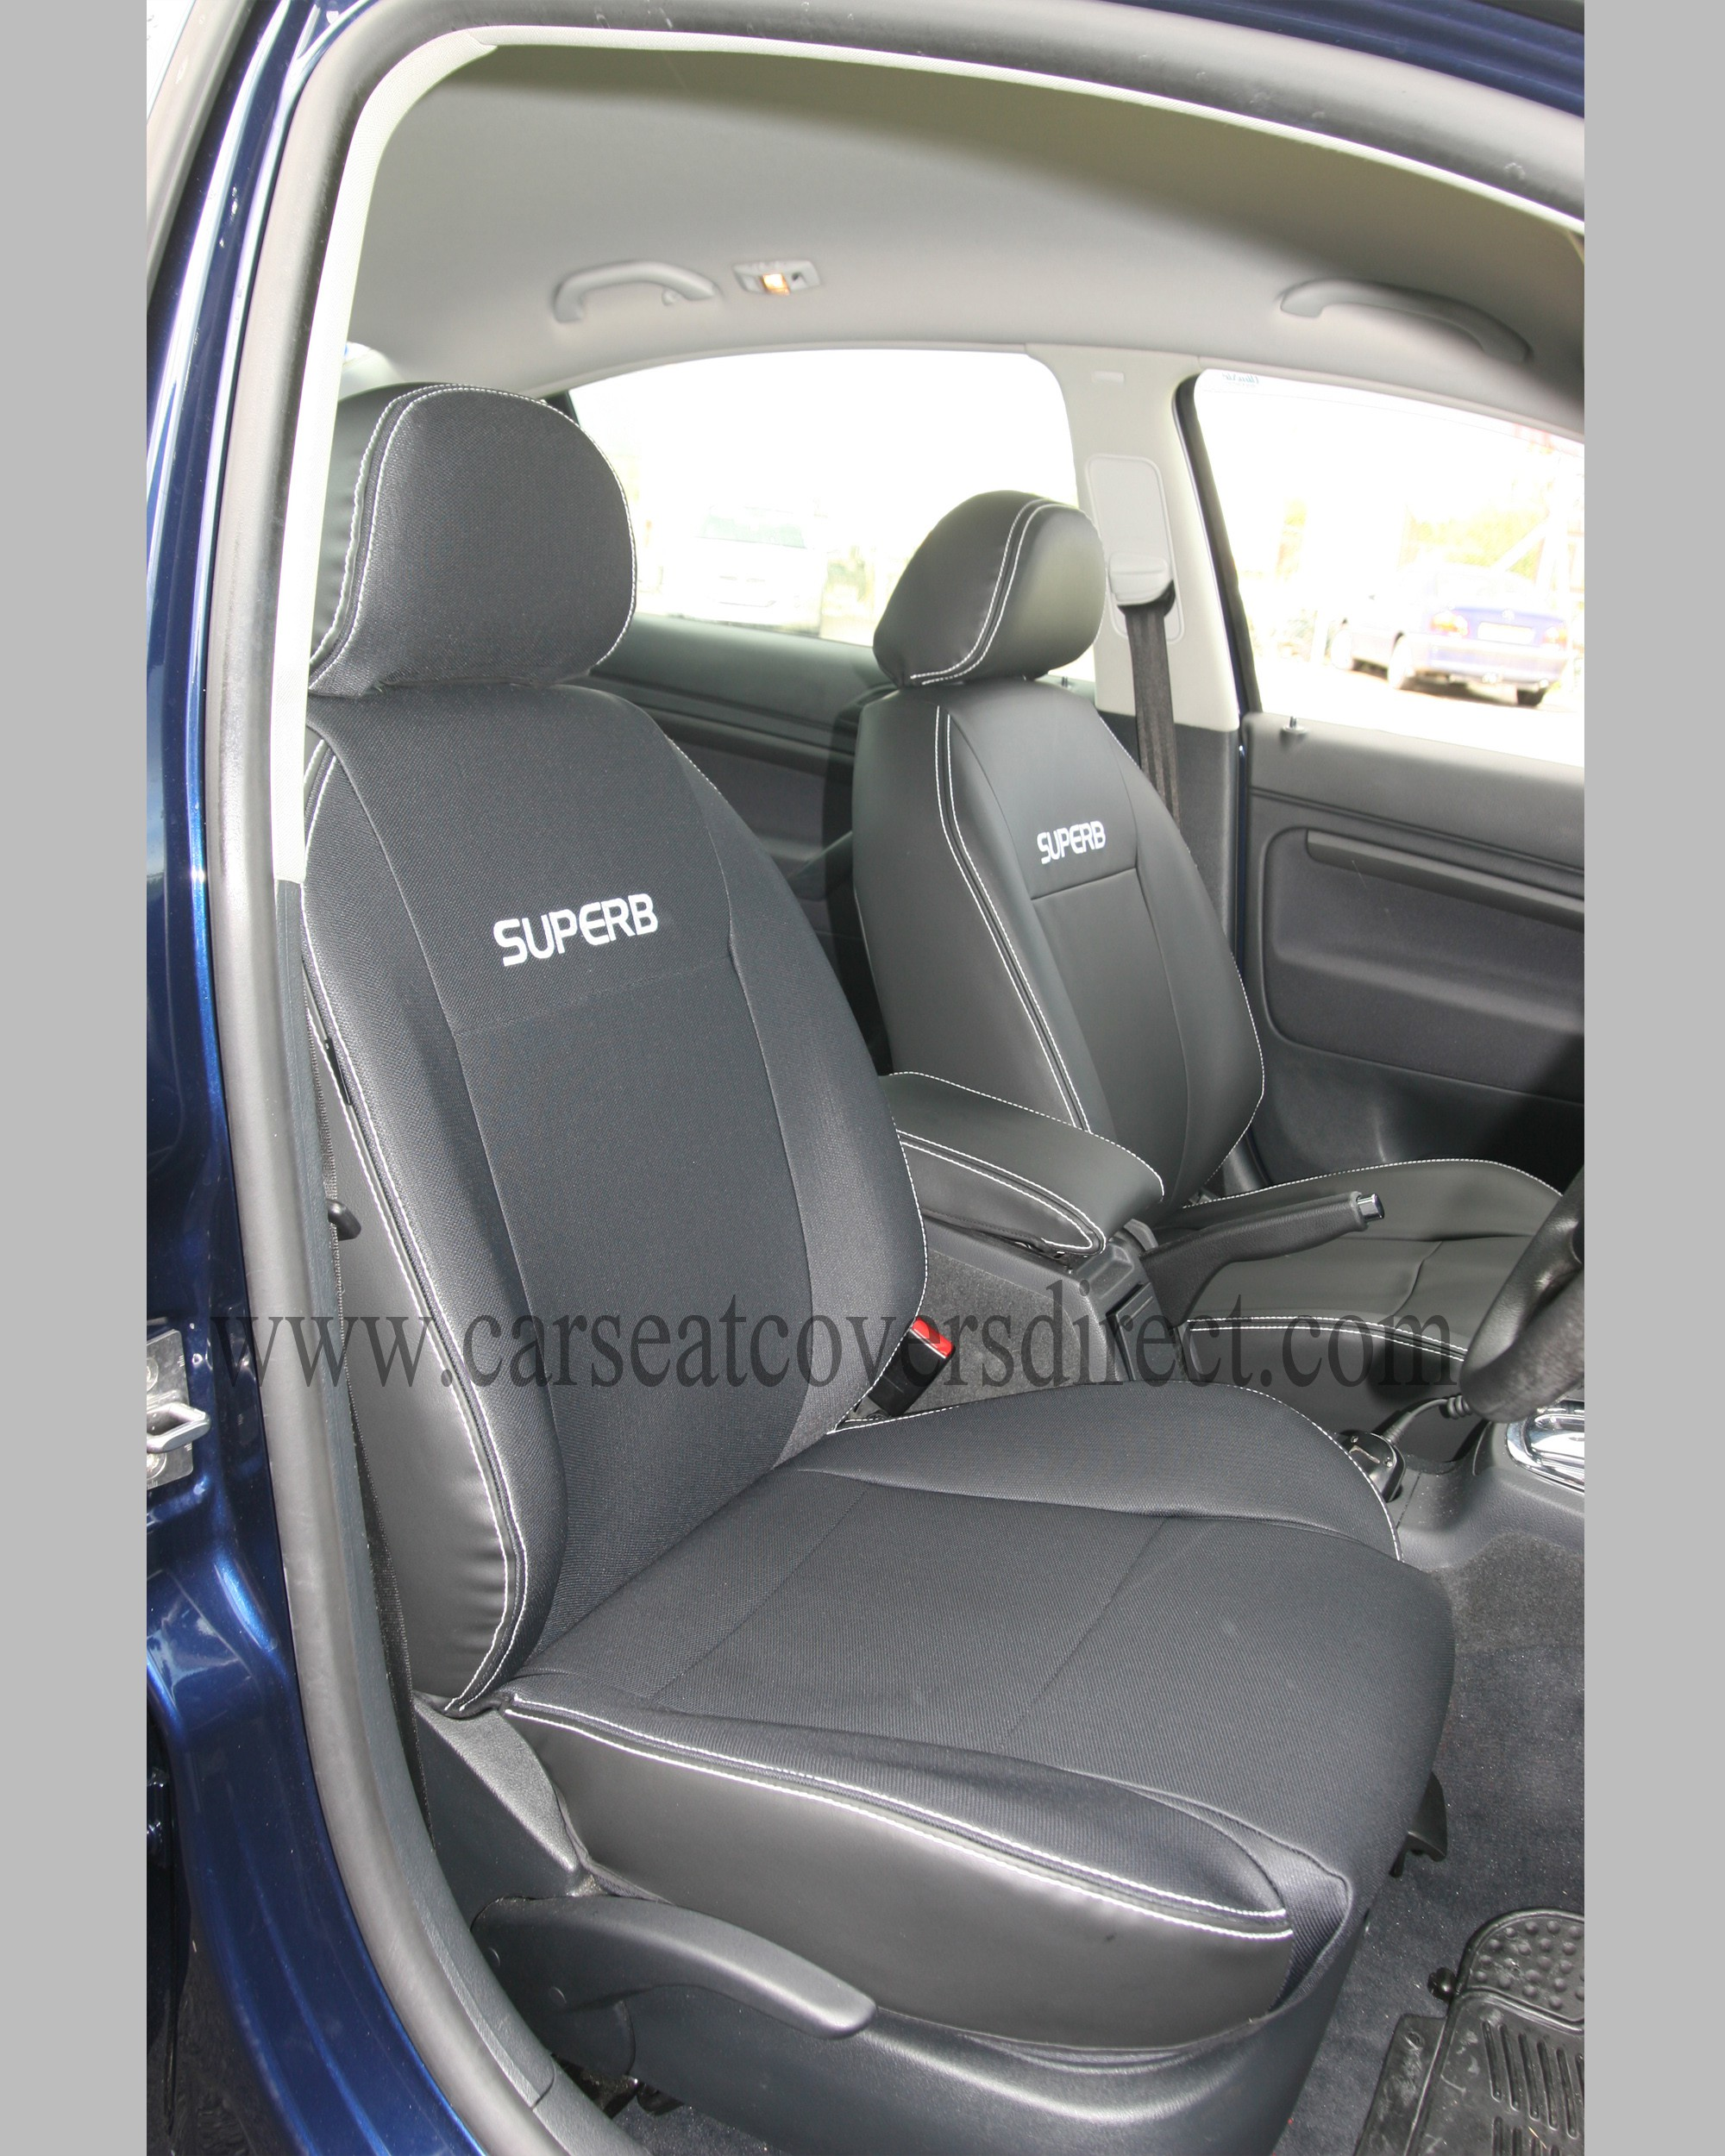 SKODA SUPERB 1ST GEN Taxi Pack Seat Covers